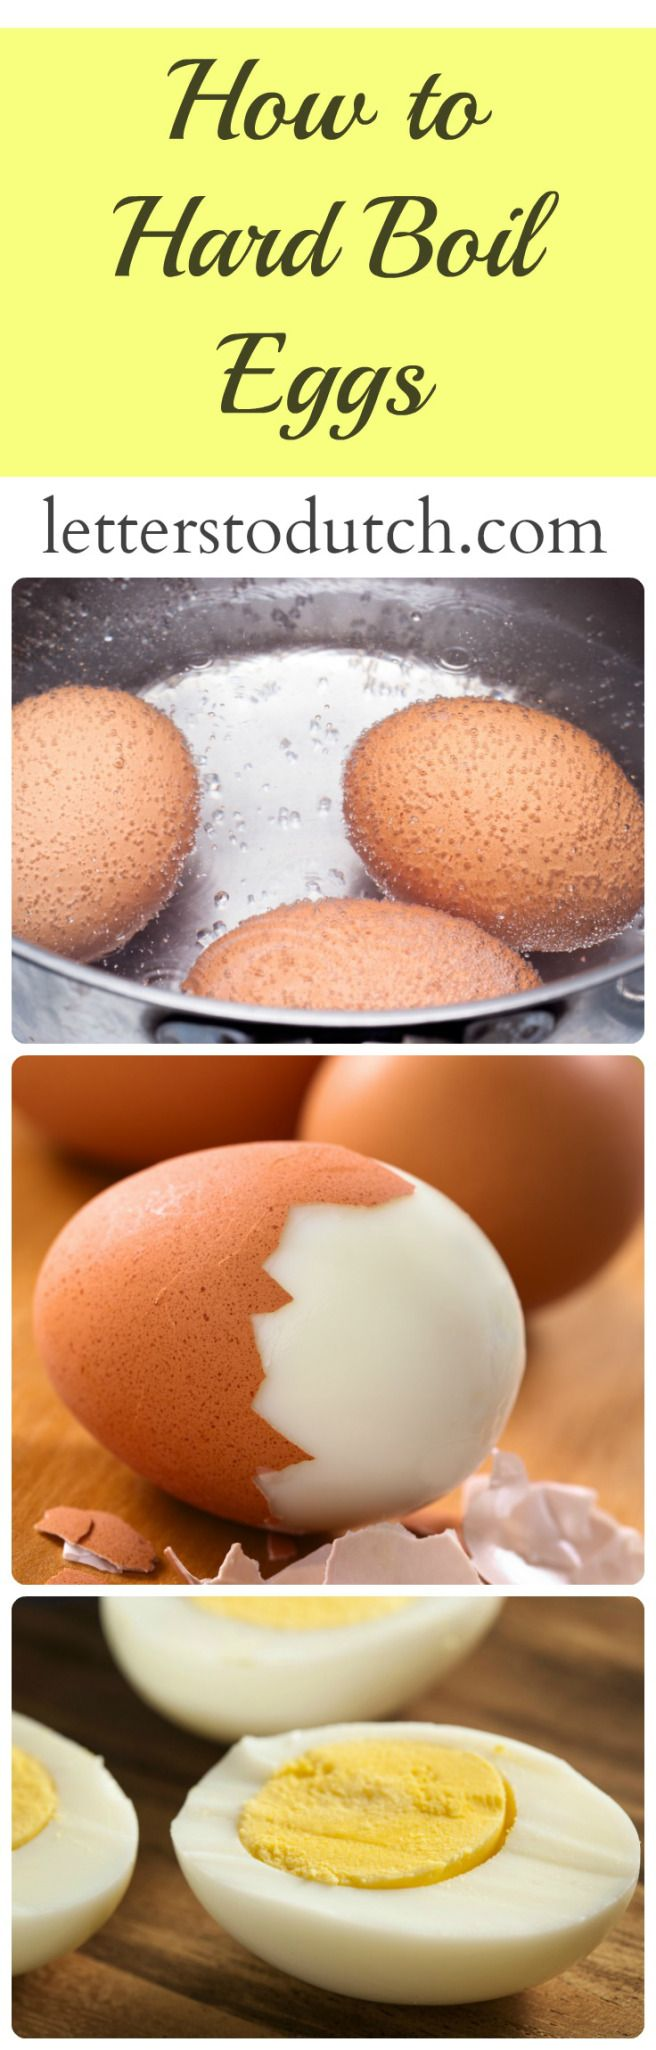 Learn how to hard boil eggs! #egg #eggs #hardboiled #protein #nutrition #sugarfree #glutenfree #healthy #delicious #yummy #easy #food #recipe #letterstodutch